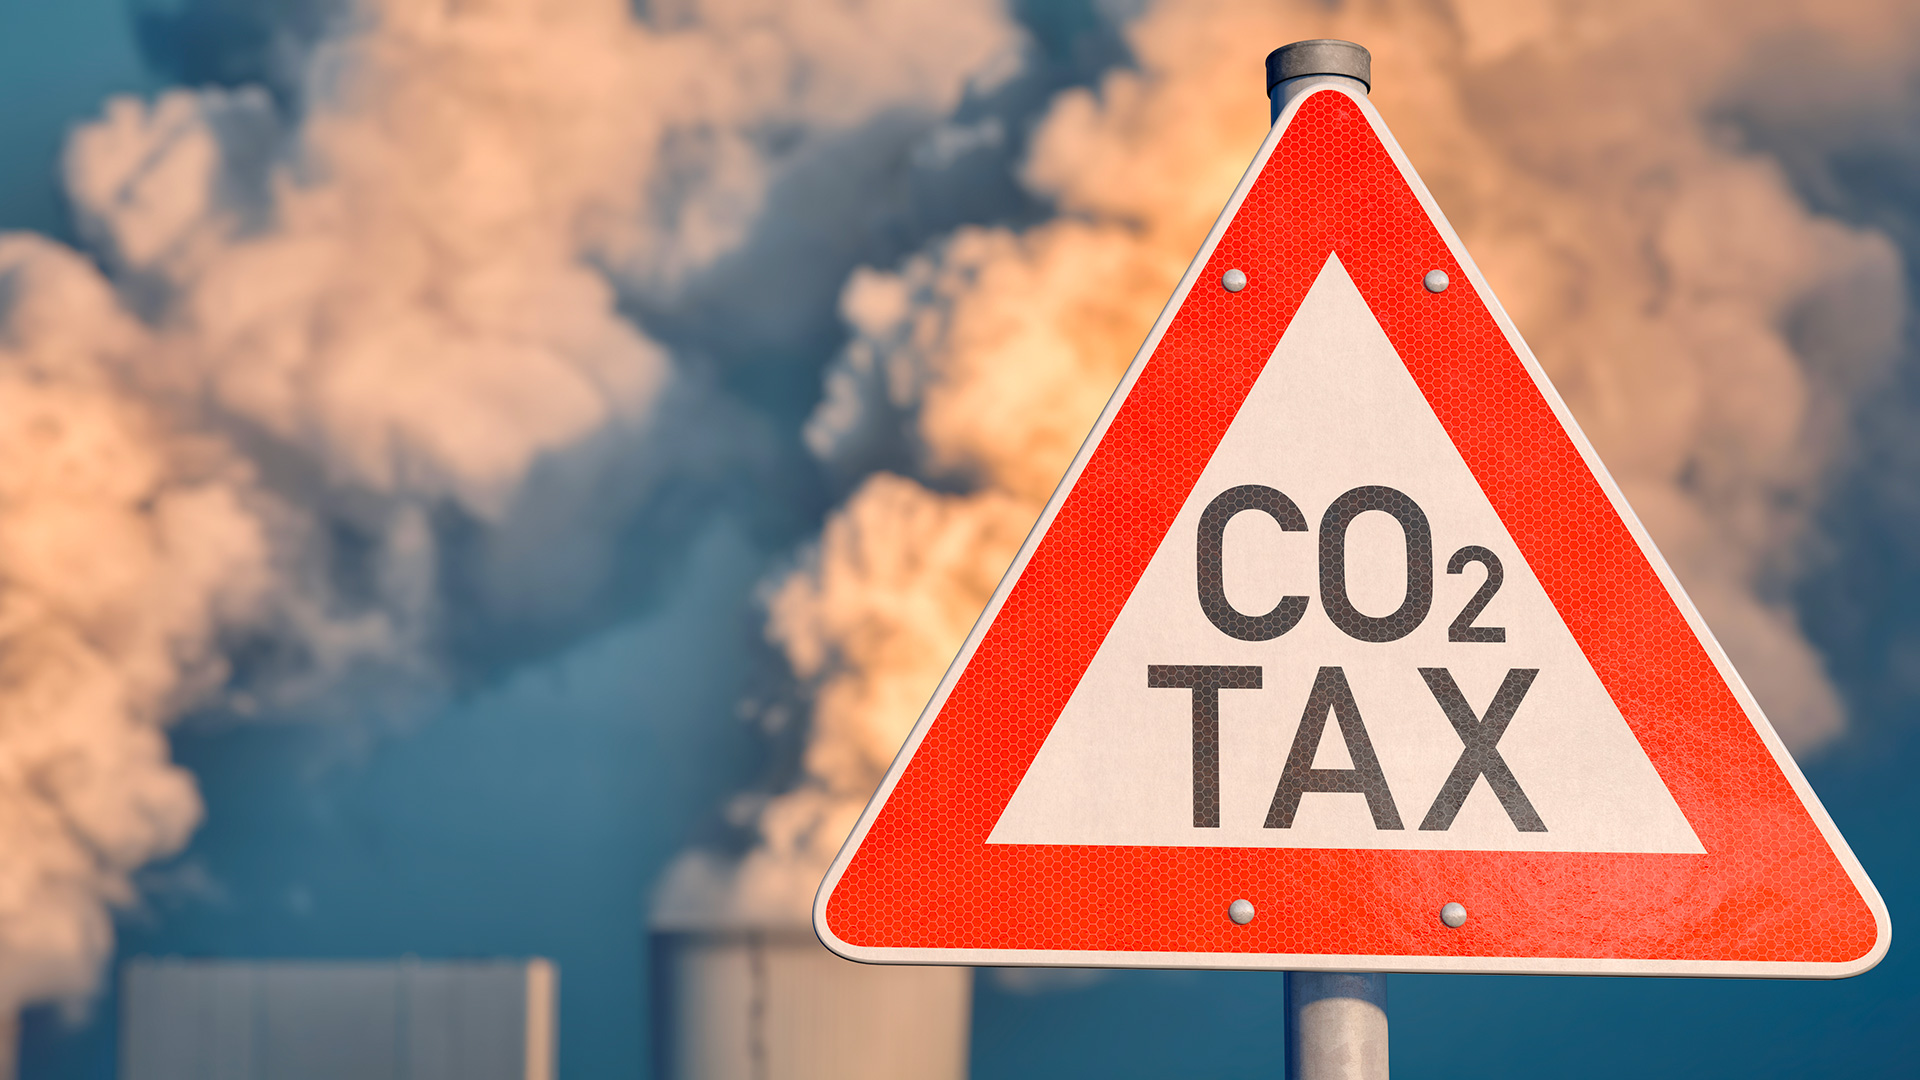 Spinergy - Carbon Tax